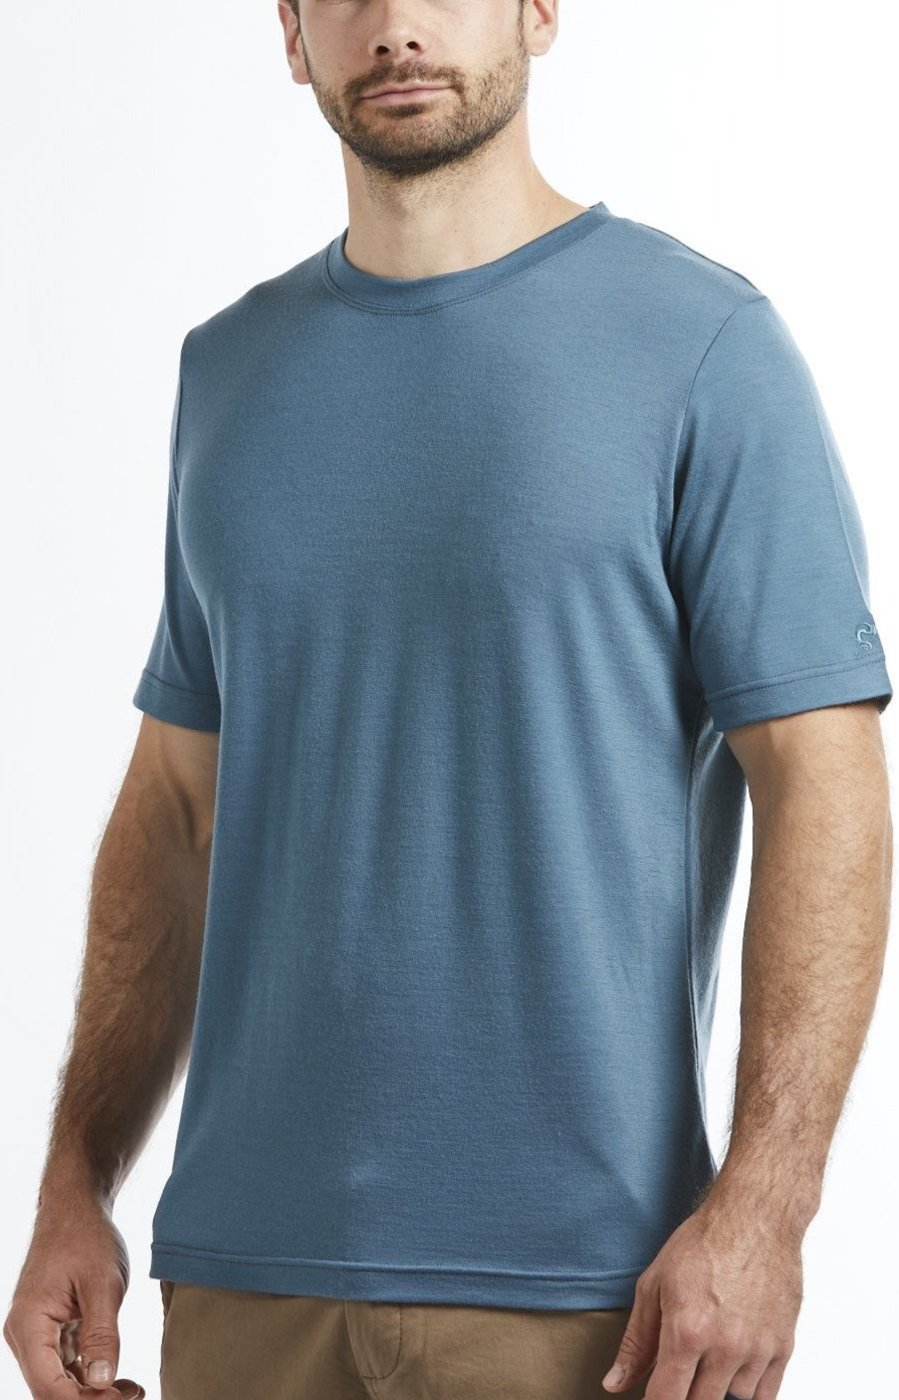 Men's Merino Wool T-shirt - Spruce